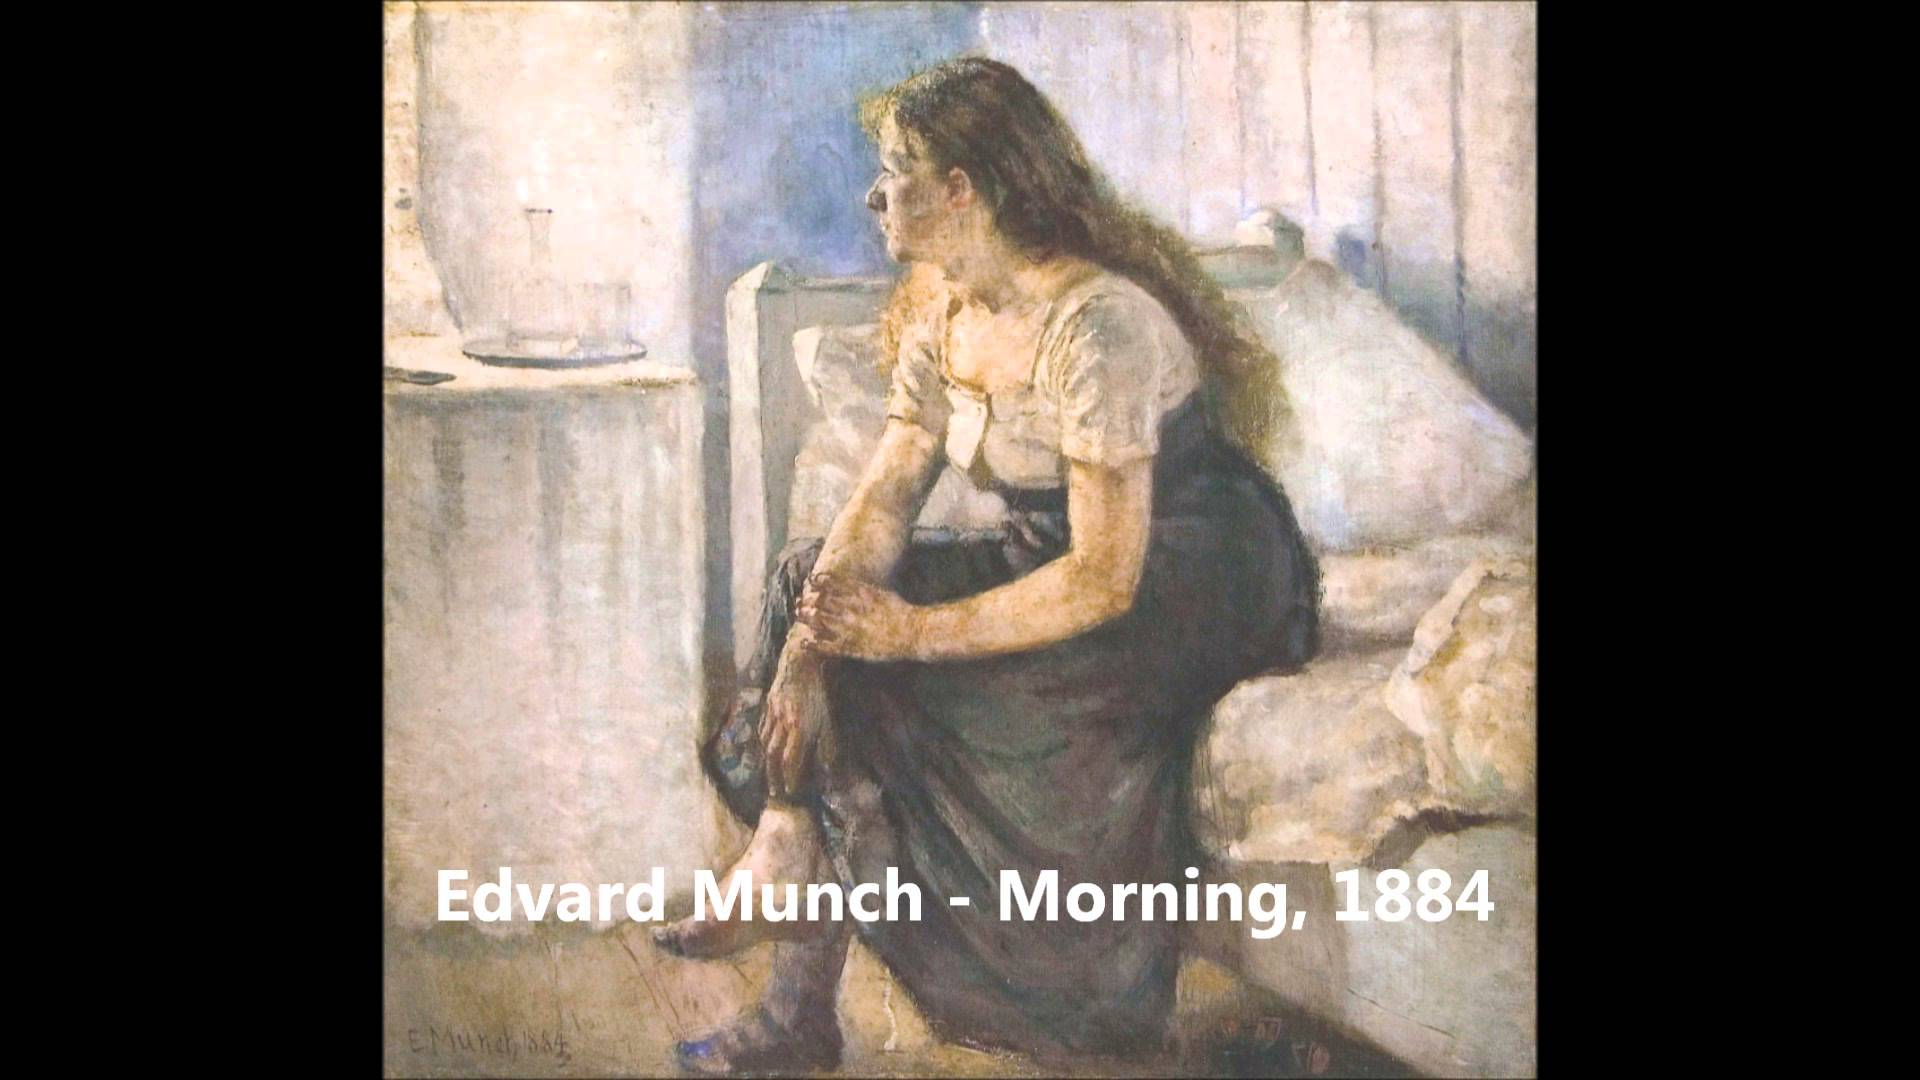 Morning (Munch)